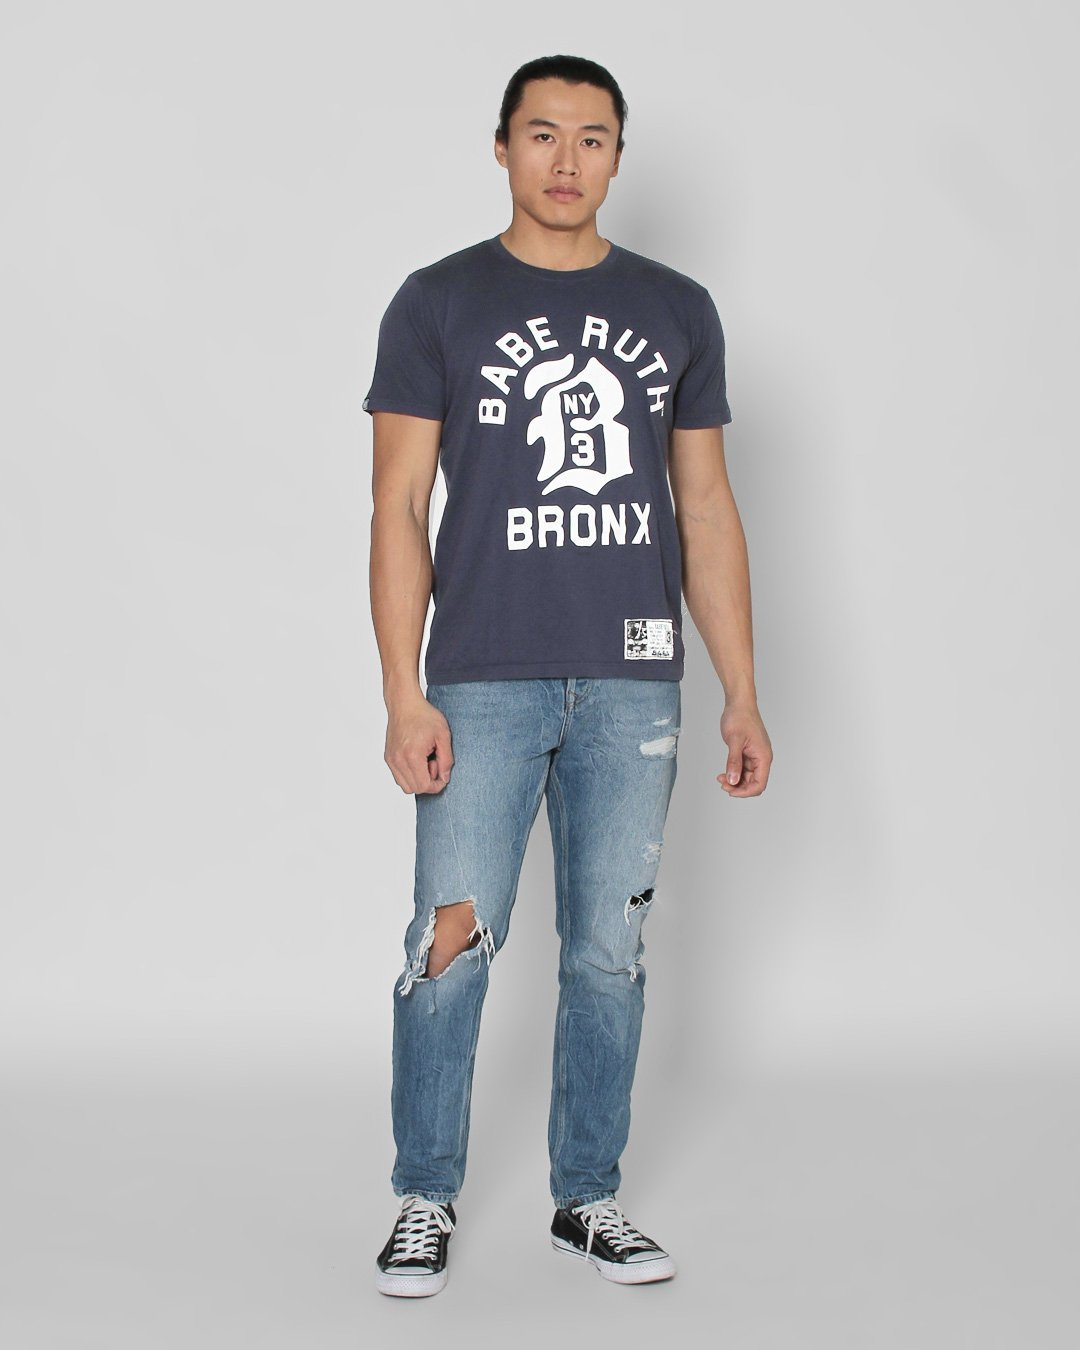 Babe Ruth Bronx Tee - Roots of Inc dba Roots of Fight